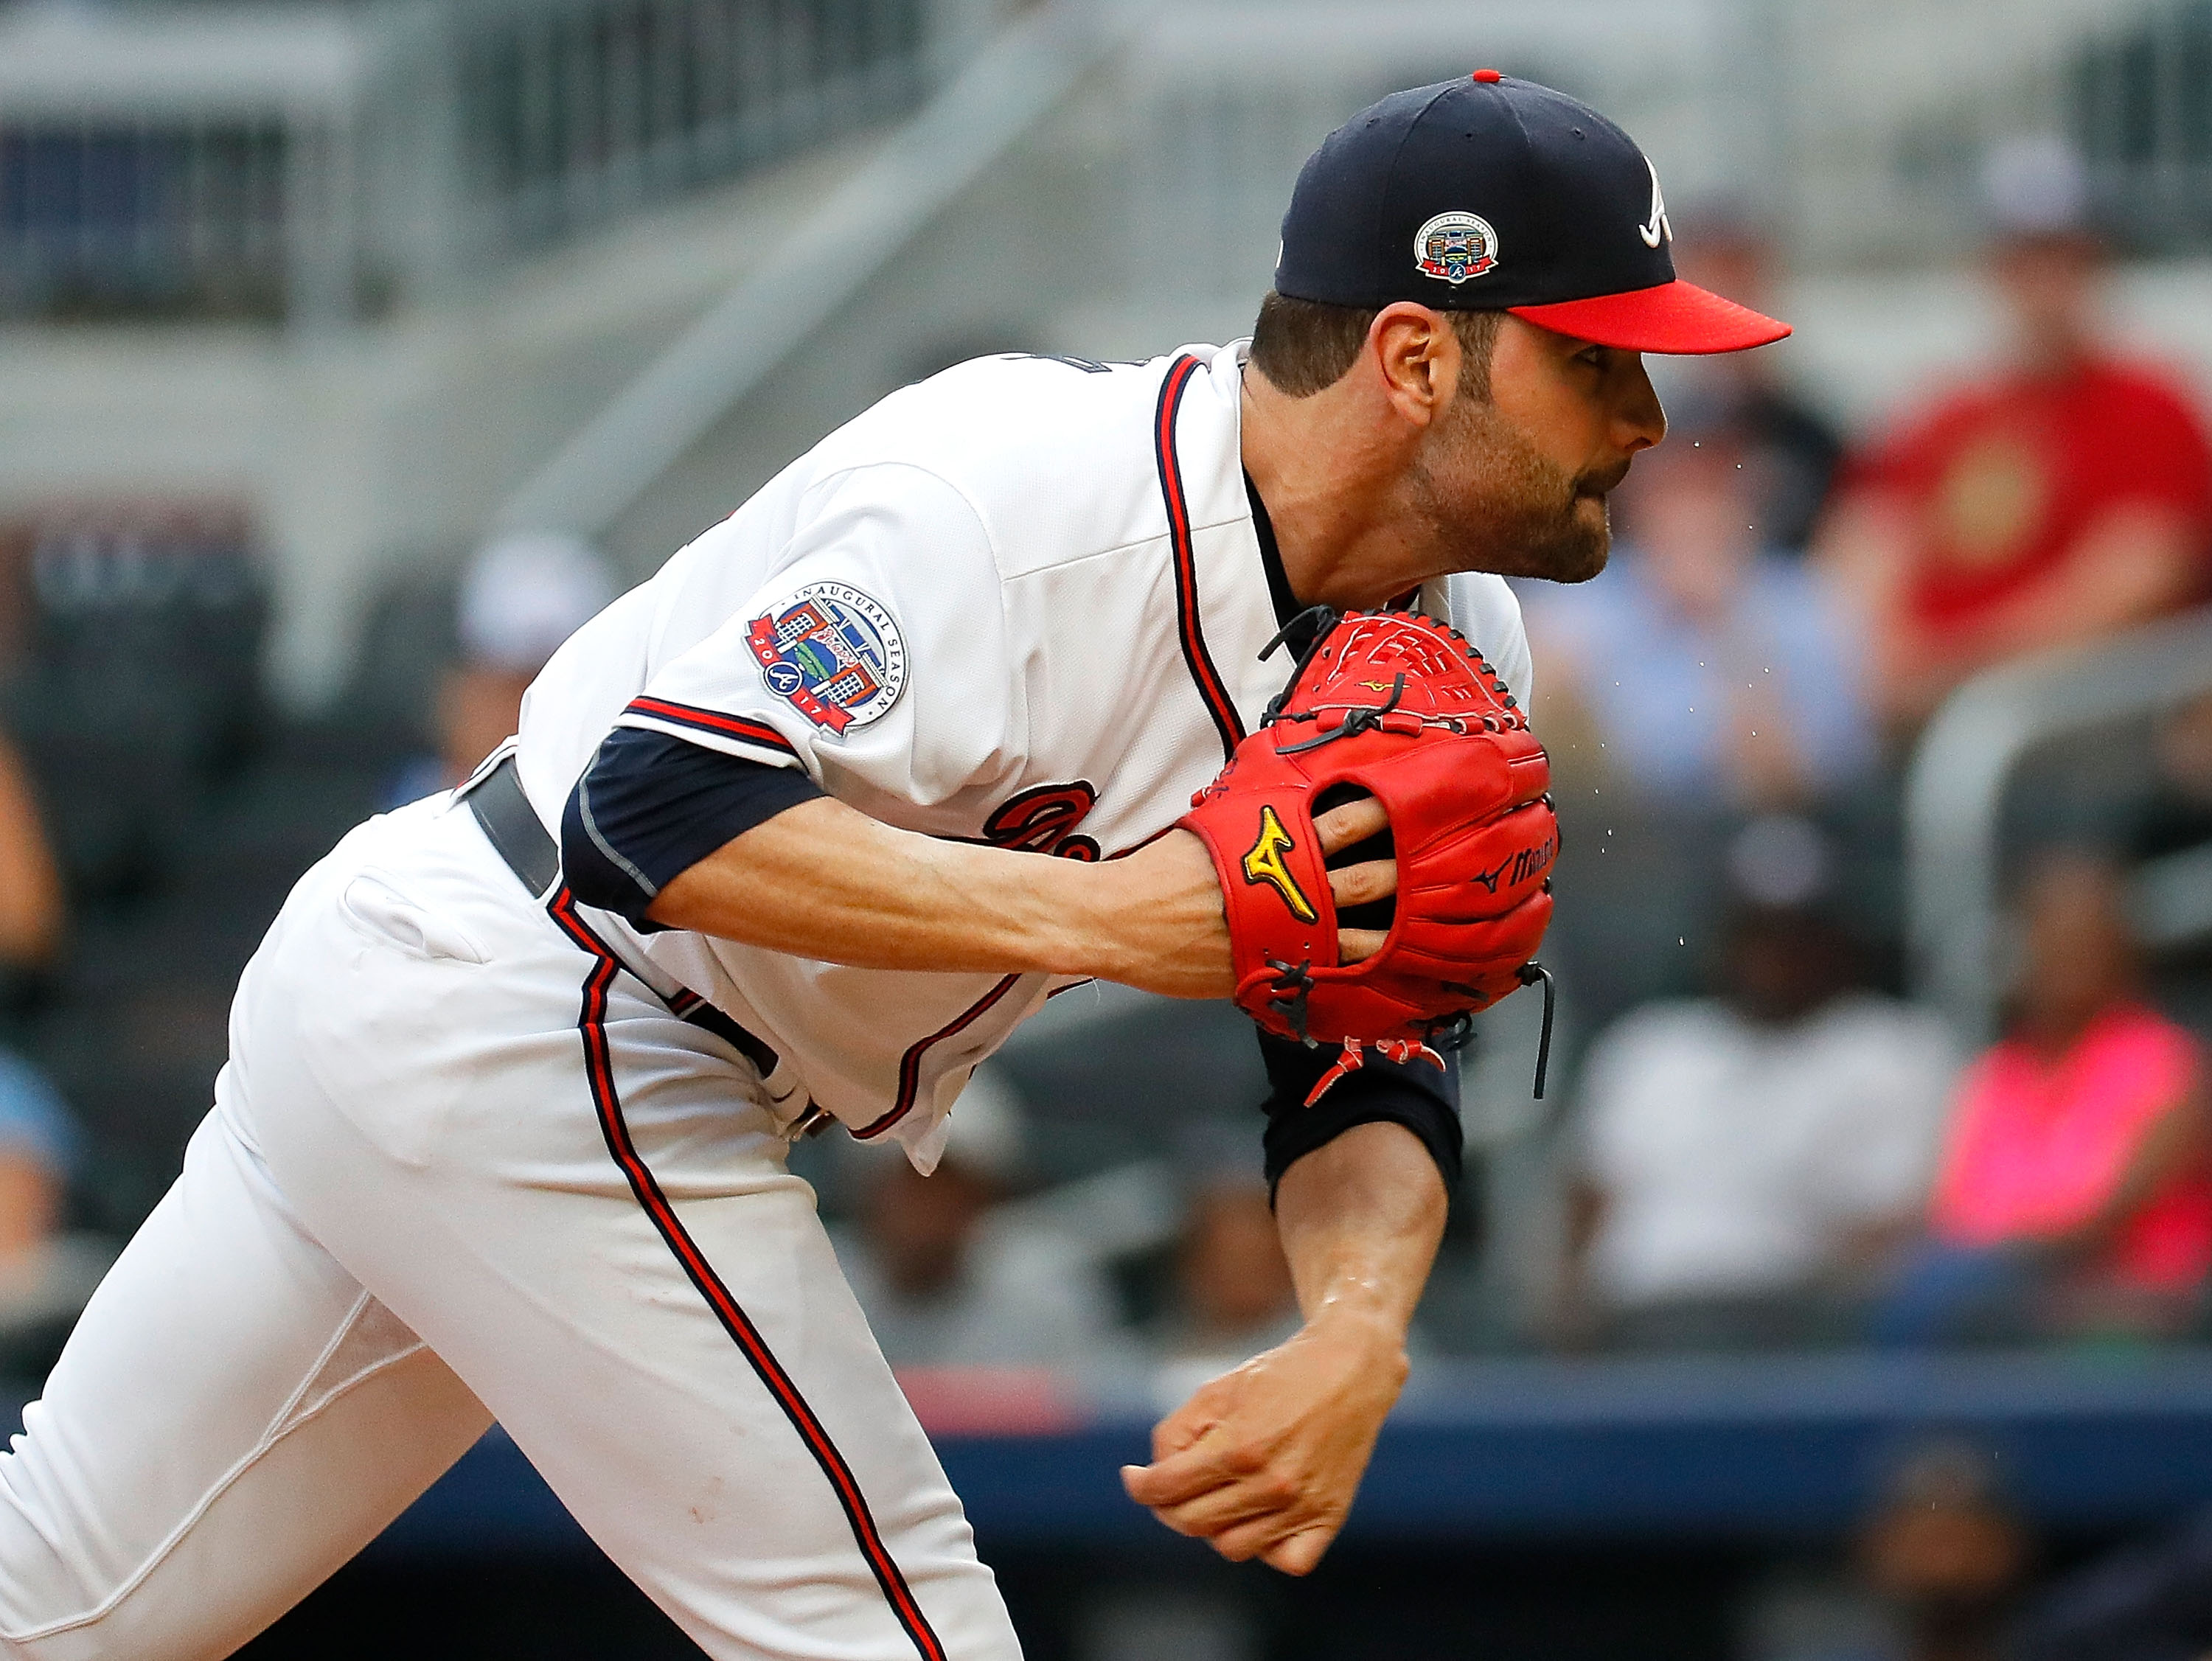 MLB Rumors: Minnesota Twins & Milwaukee Brewers Interested in Jaime Garcia